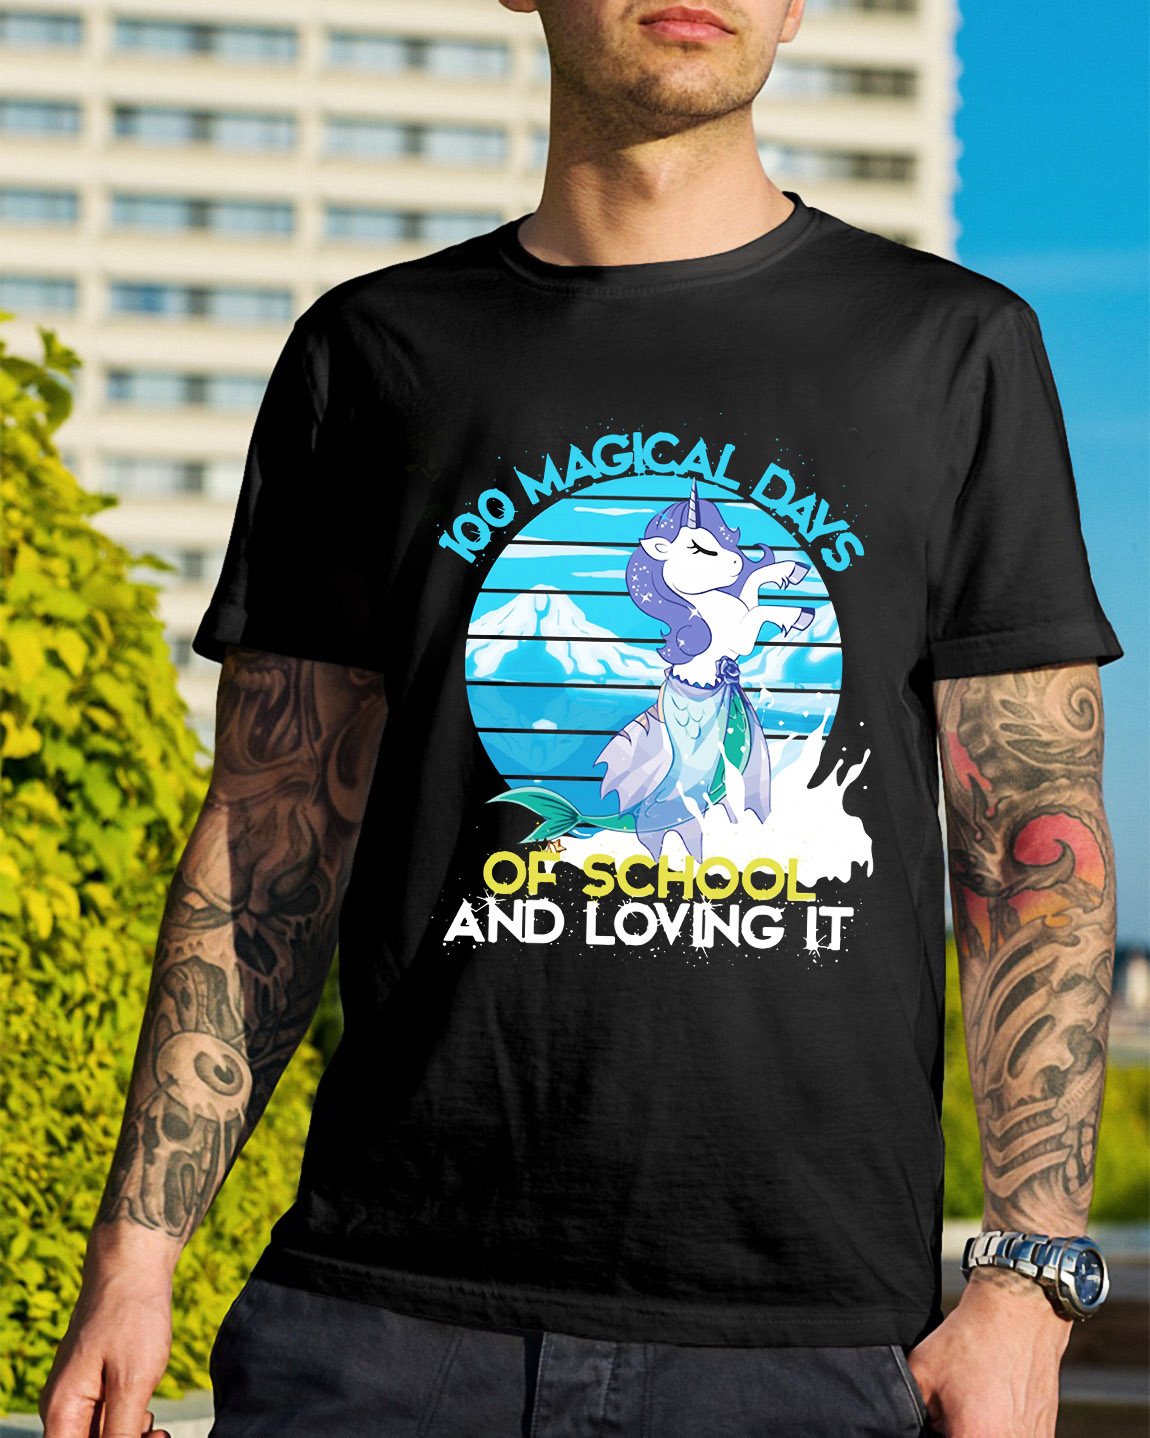 100 magical days of school and loving it Unisex T Shirt Size S-5XL